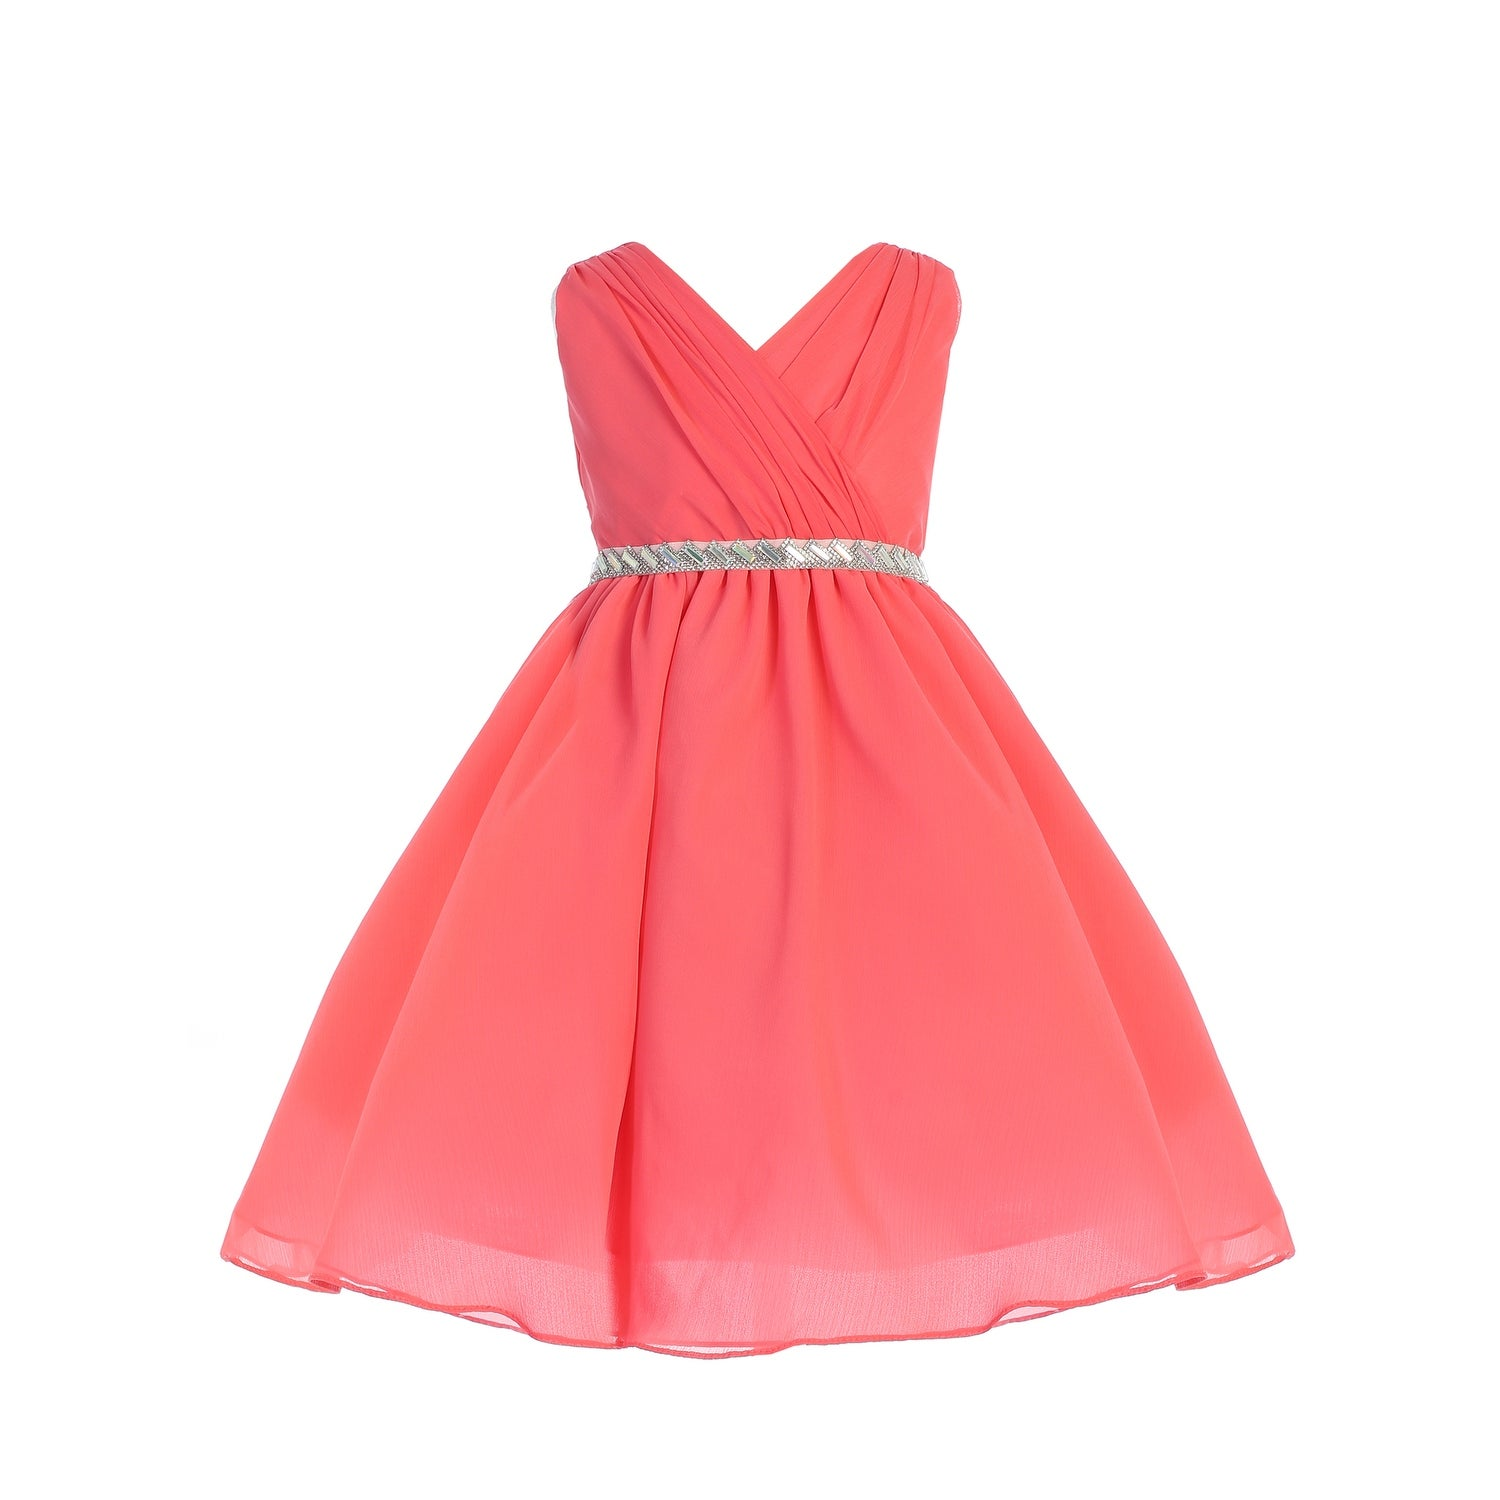 44711aa0cf593 Coral Flower Girl Dresses For Toddlers - raveitsafe